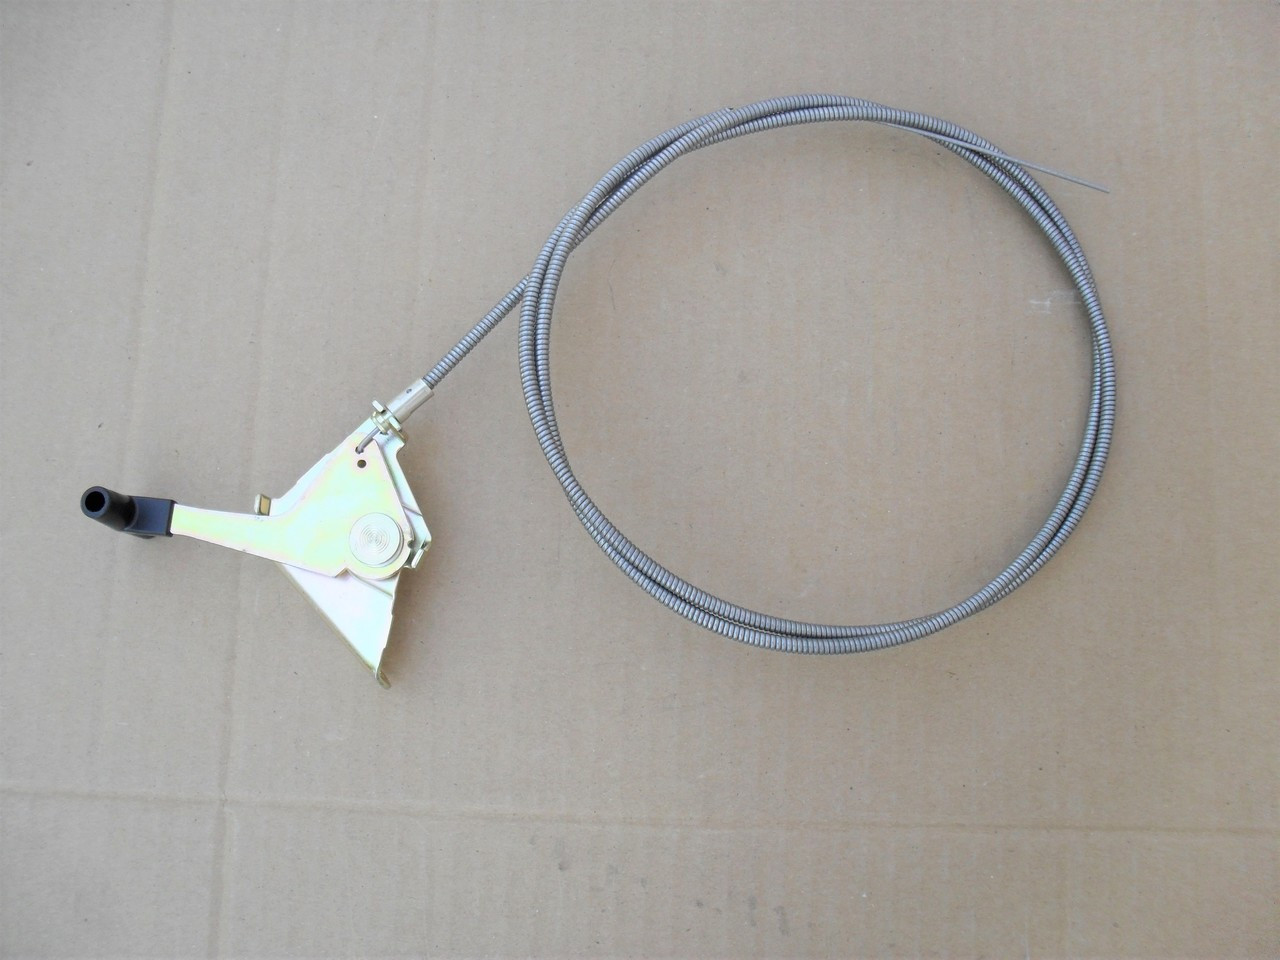 """Throttle Cable for Lawn Mower, Blower, Conduit Length 48"""", Inner Wire Length 52-3/4"""", 290-163, Made In USA"""